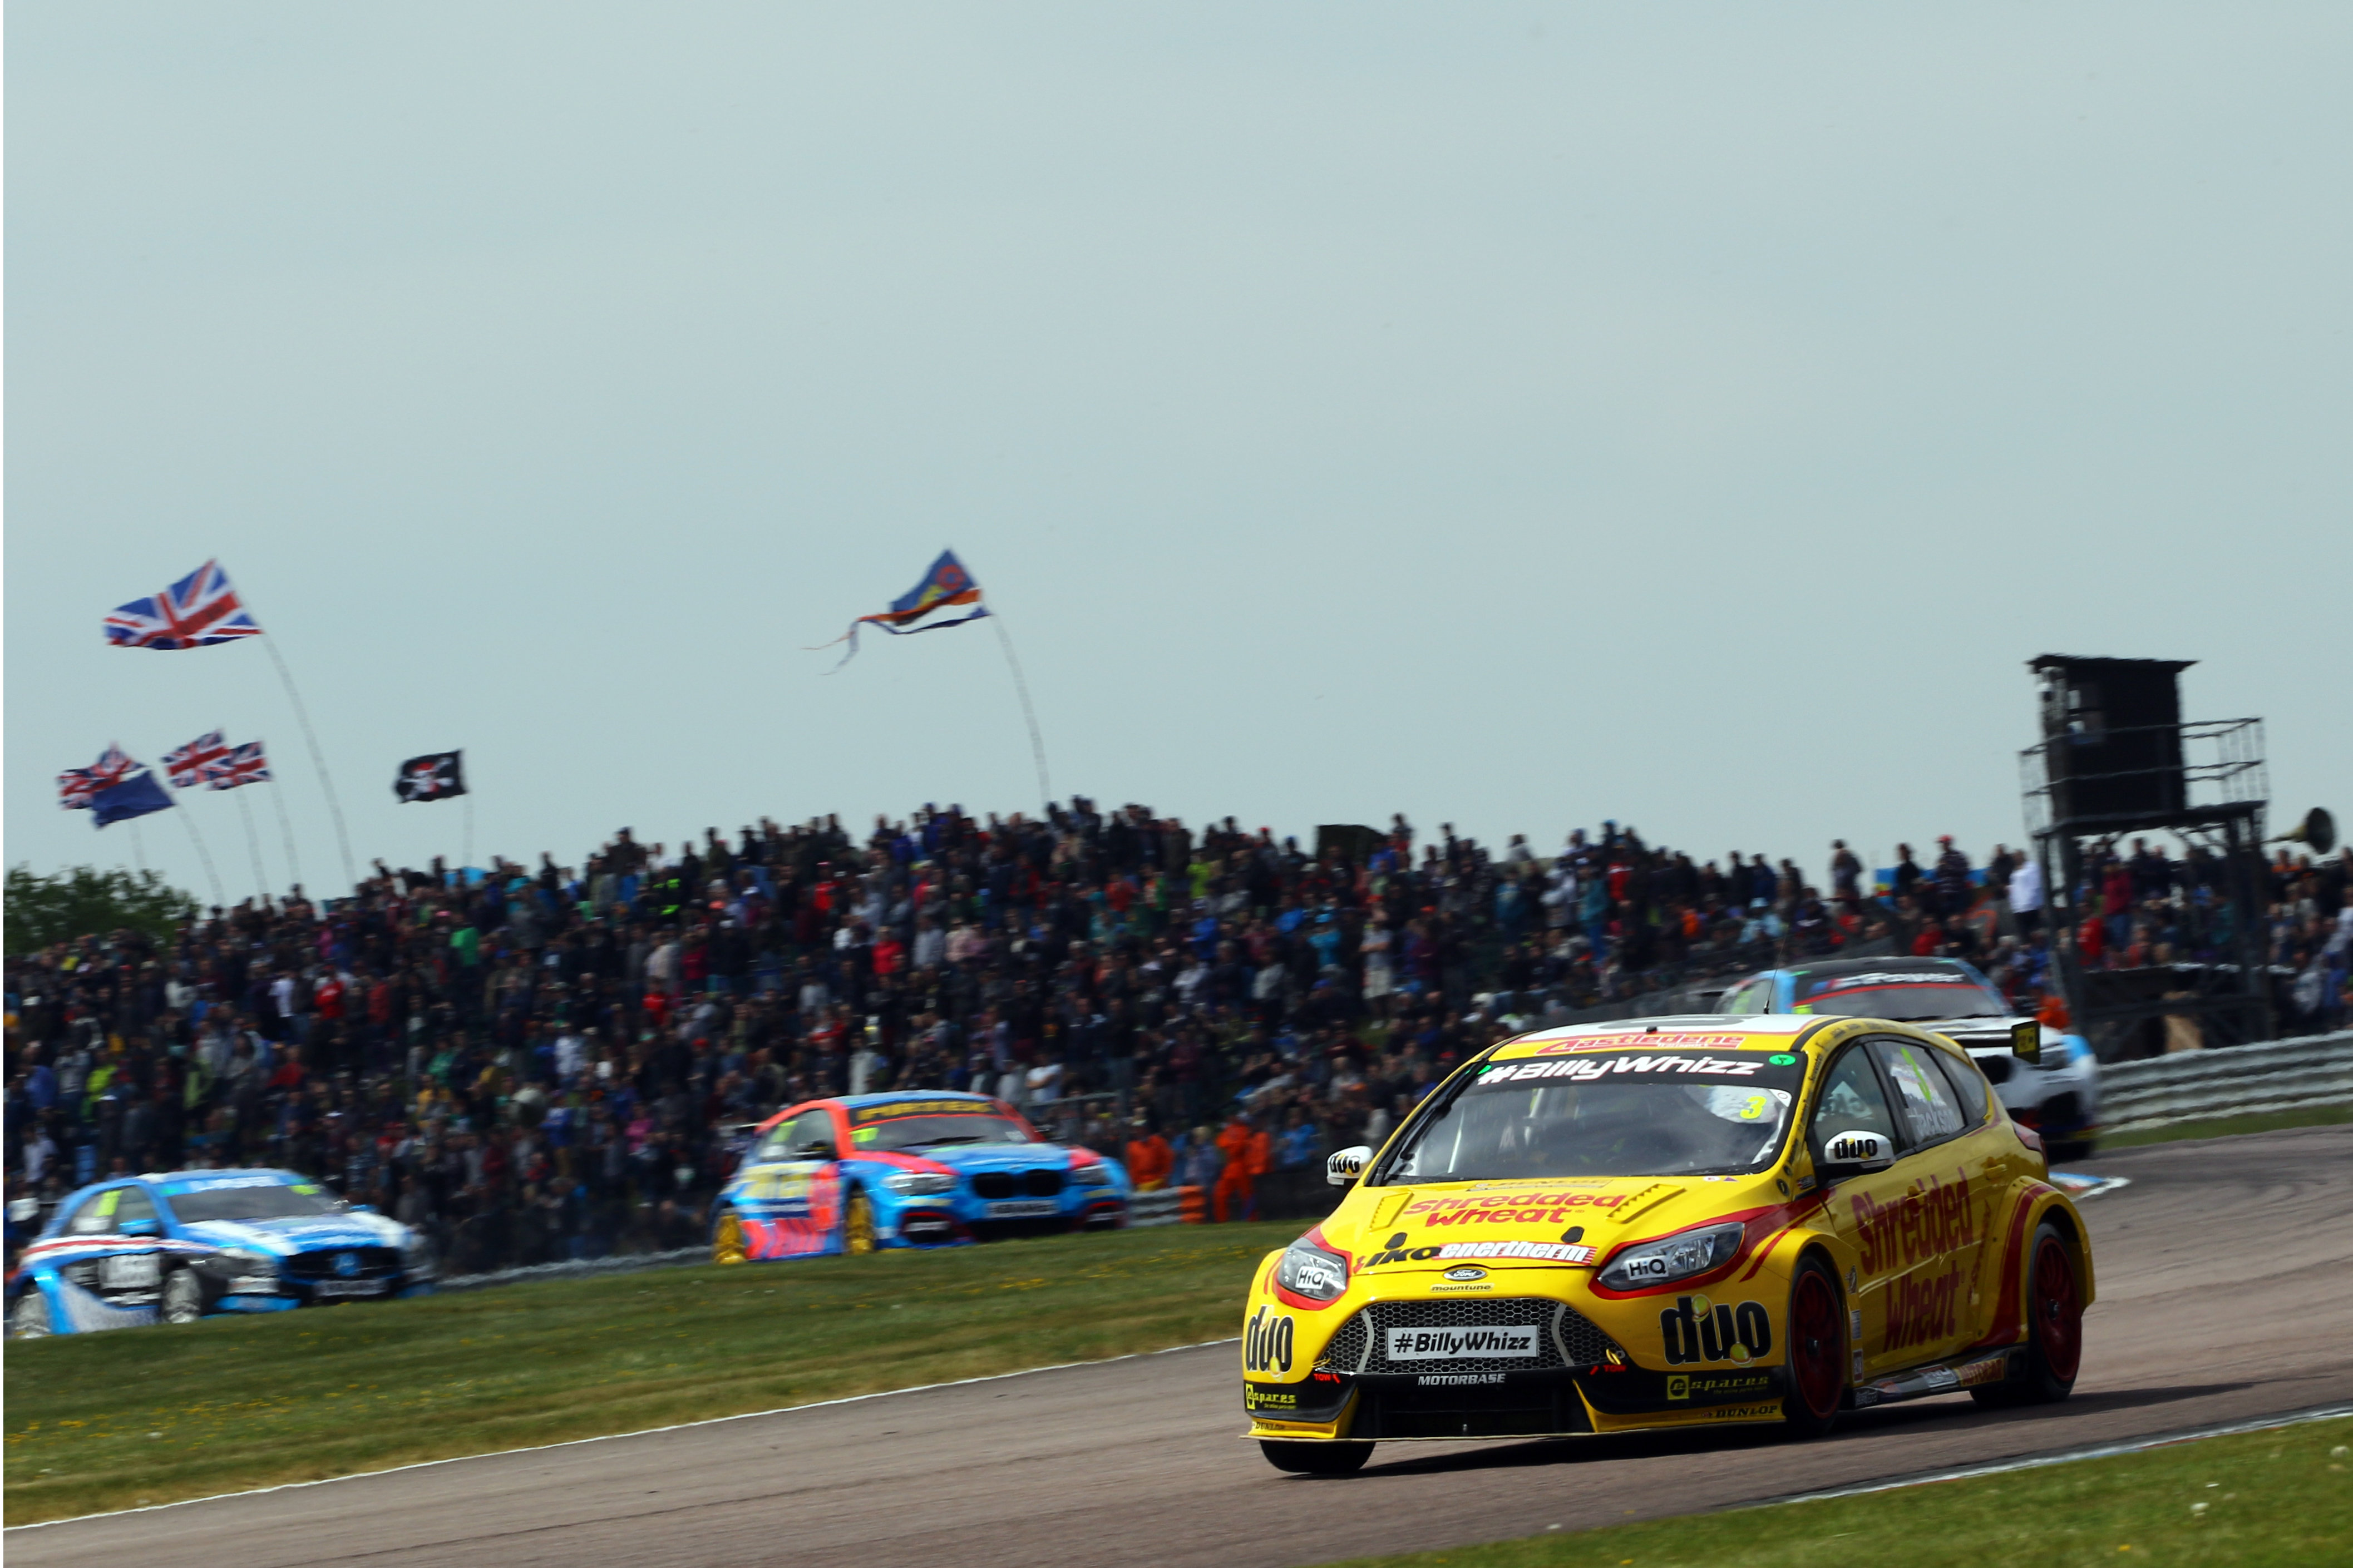 Sponsor News: Double Points for Team Shredded Wheat Racing with DUO at Thruxton